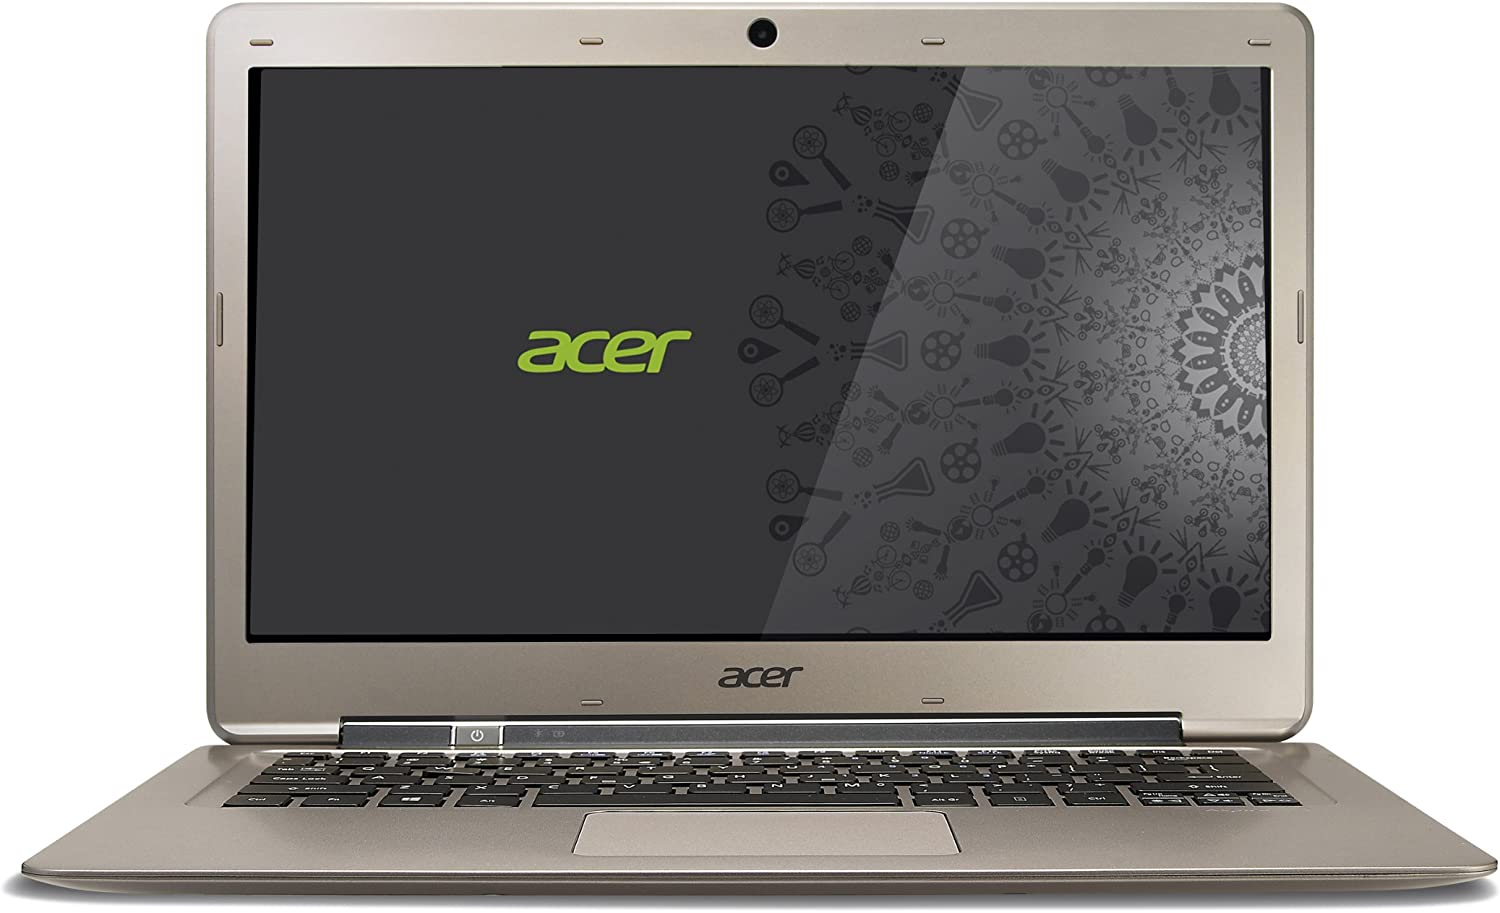 Acer Aspire S3-391-6497 13.3-Inch Ultrabook (Champagne)